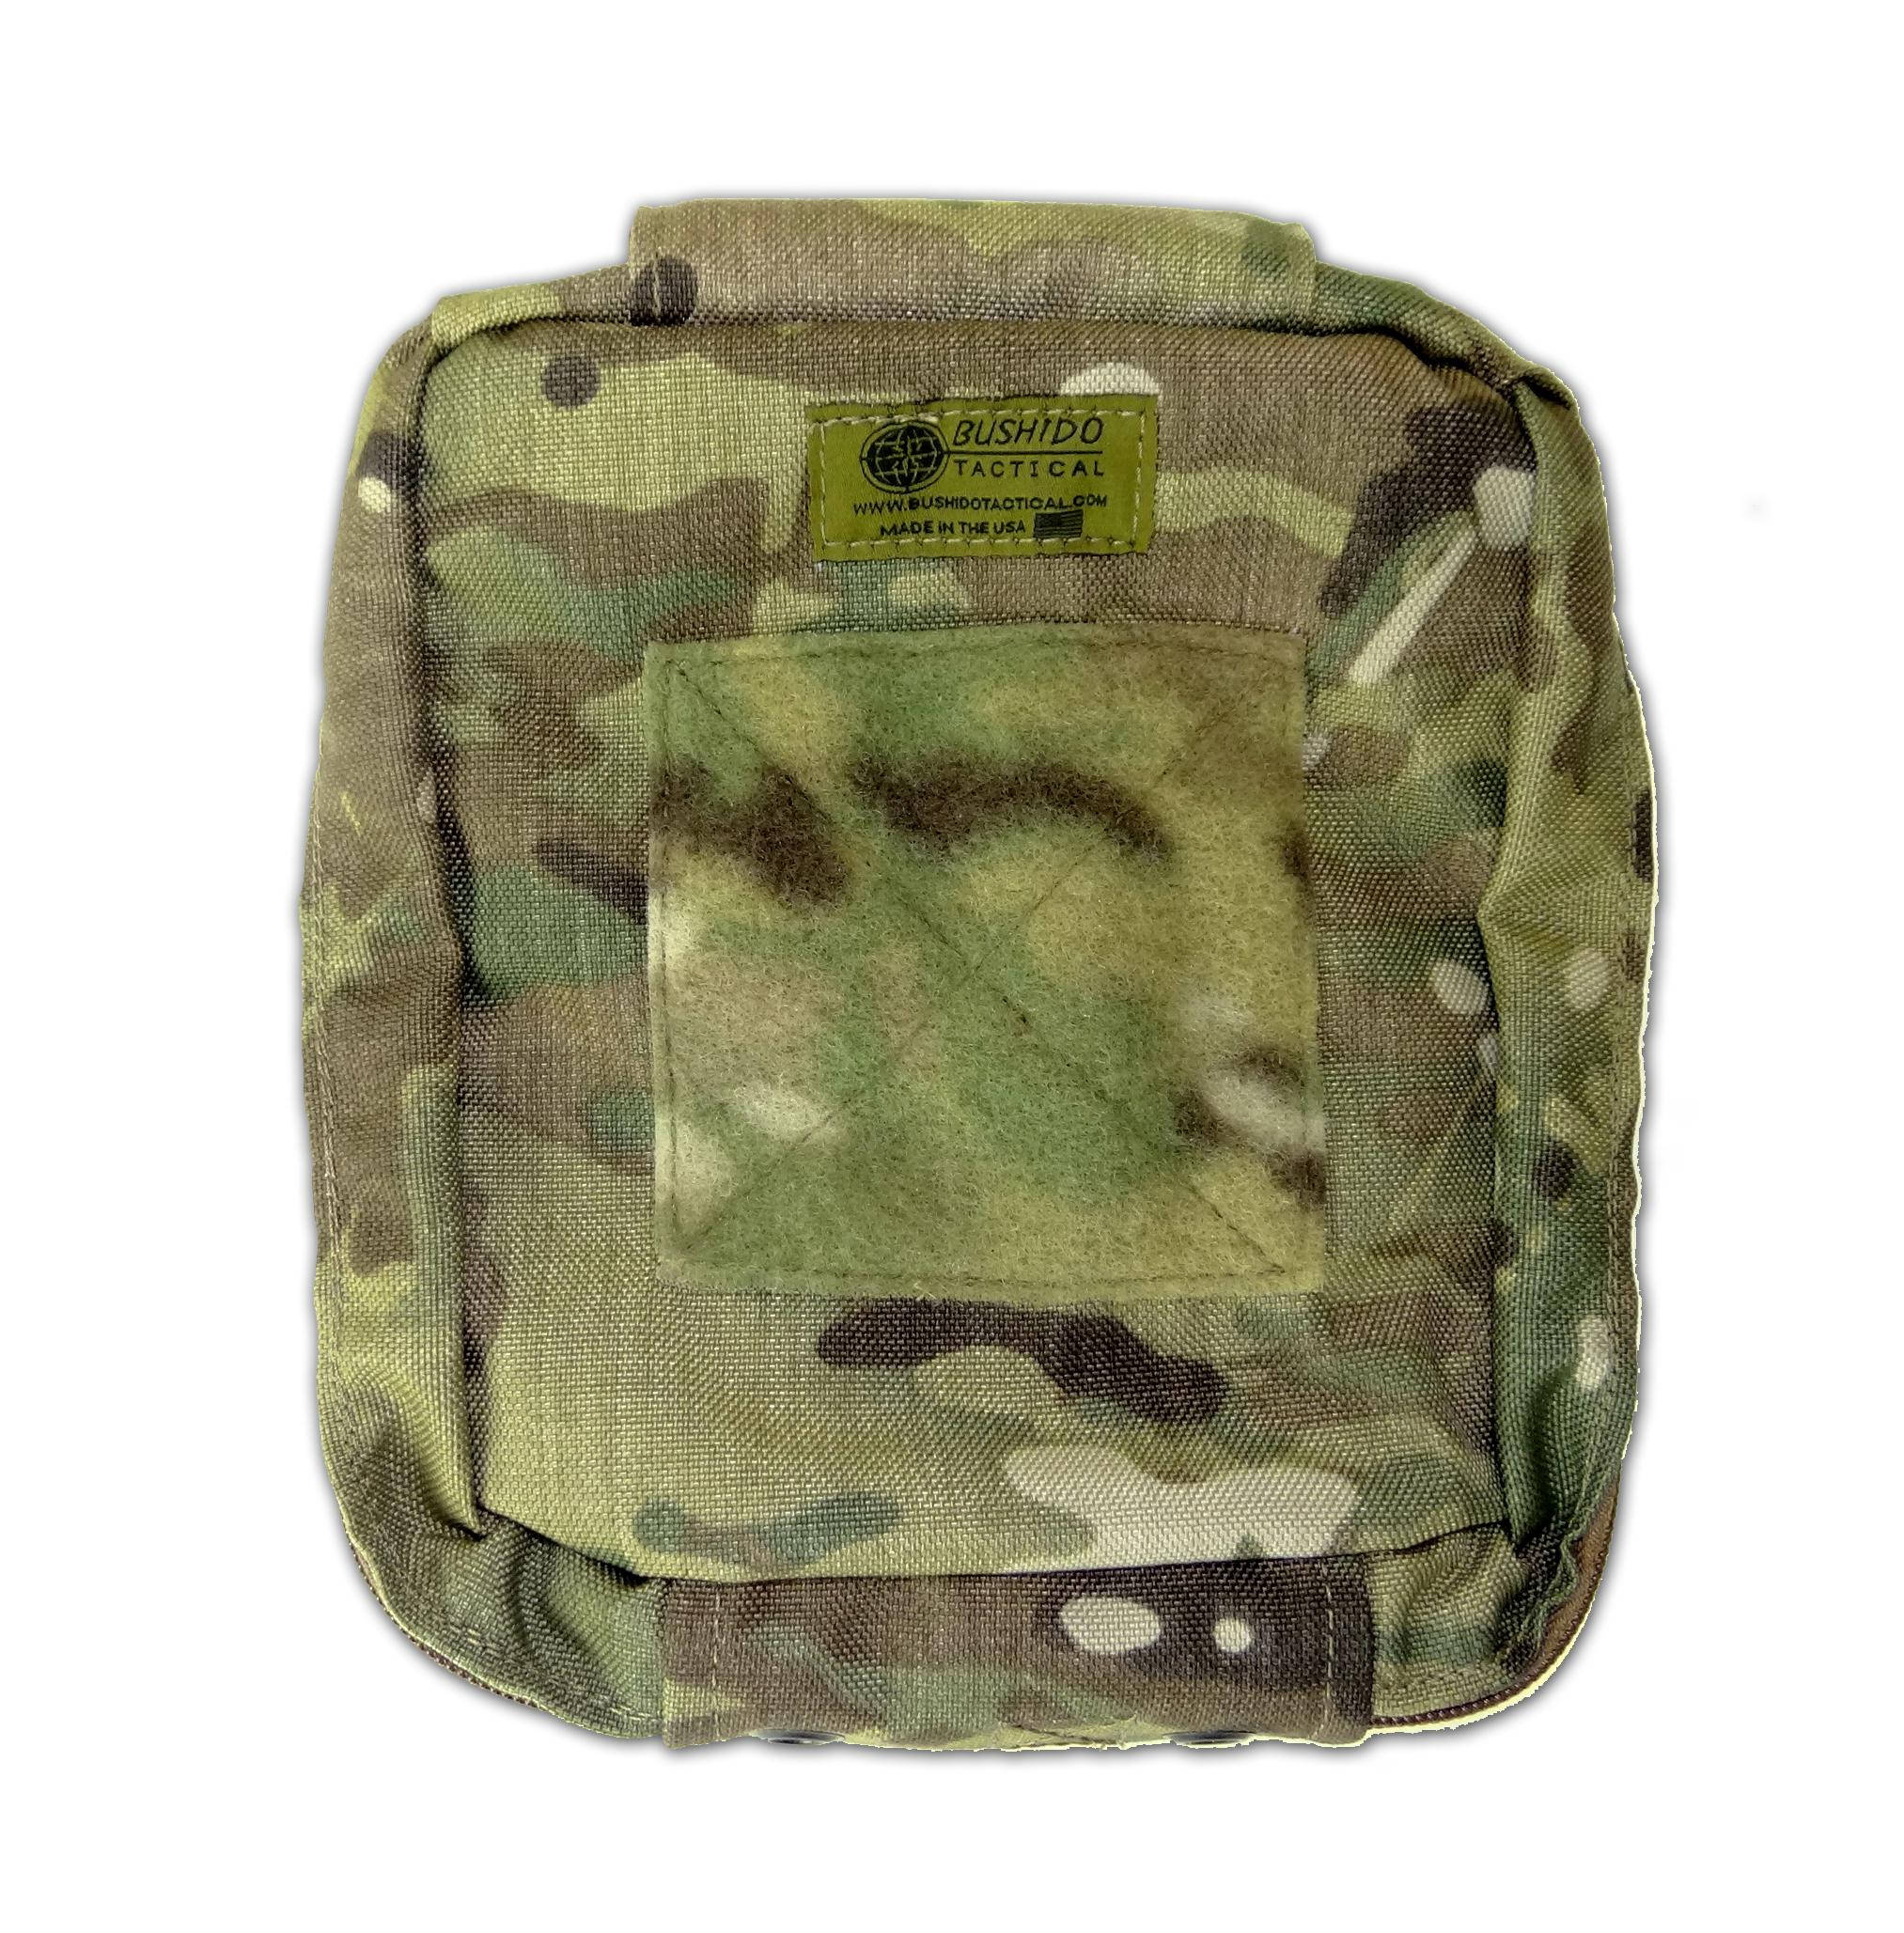 Medical Team First Aid Kit (TFAK) Pouch